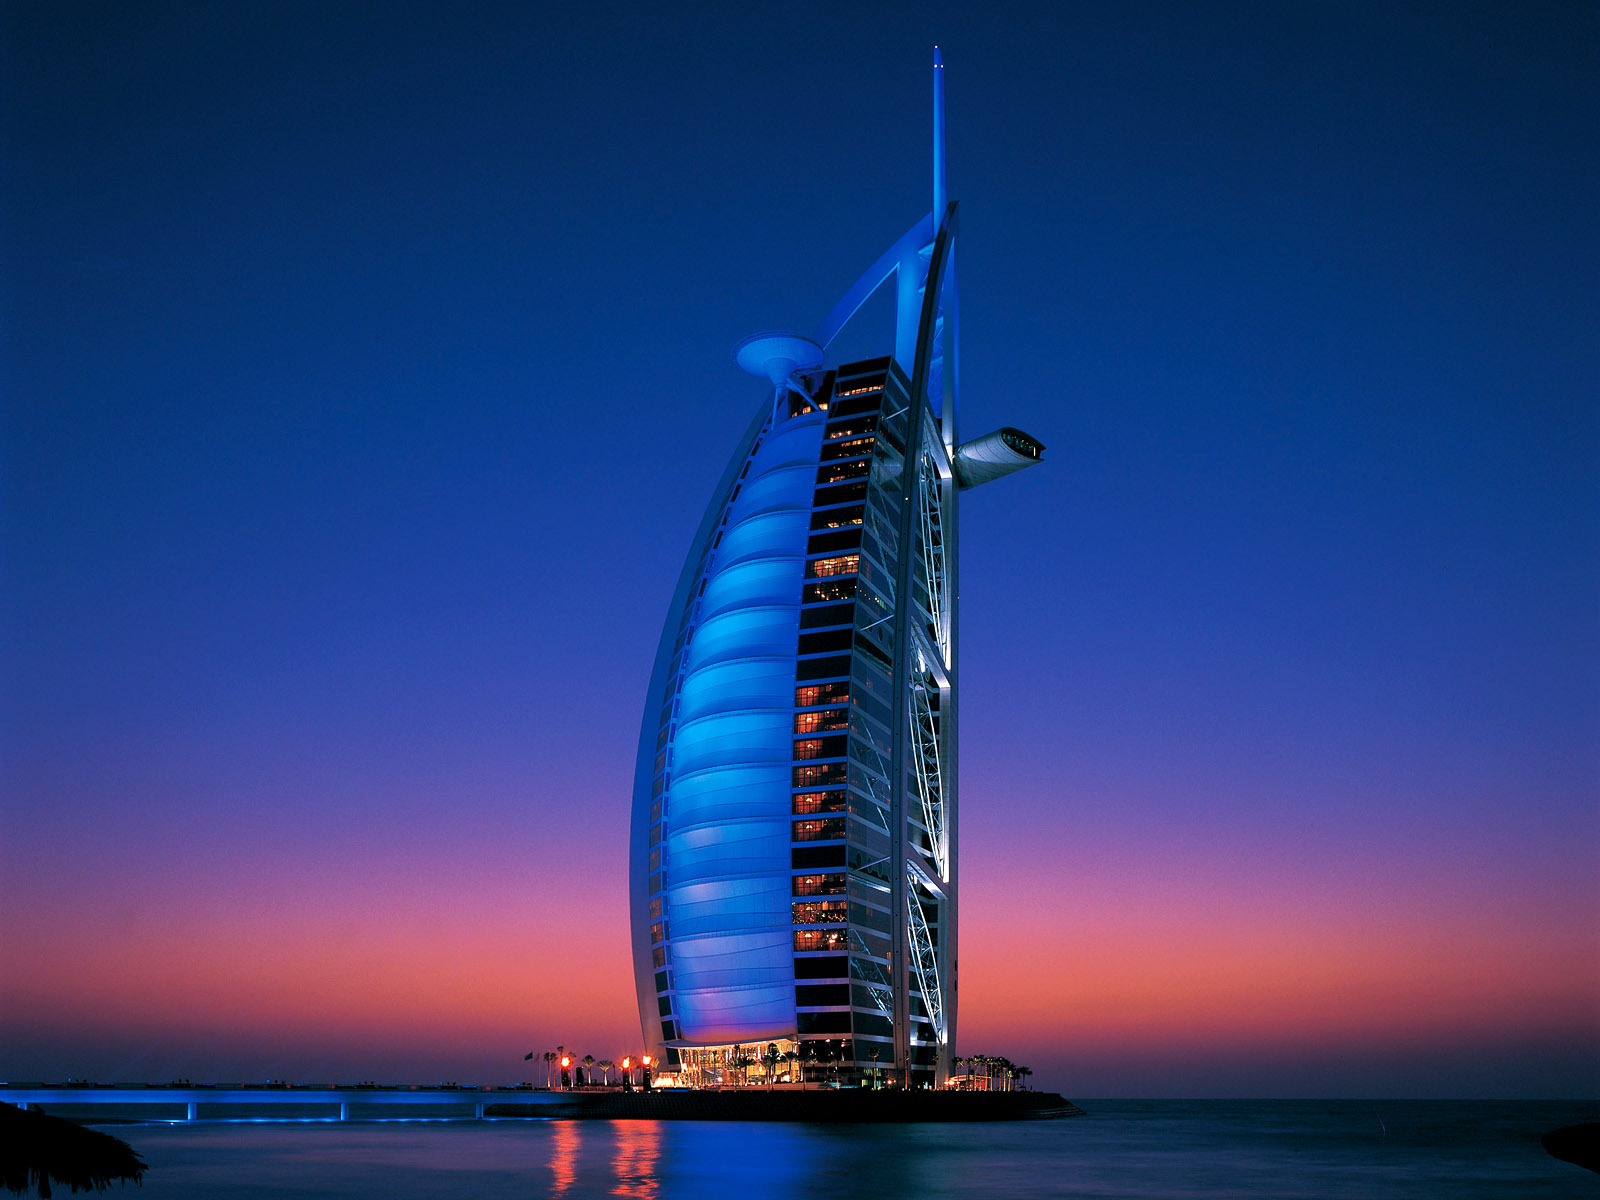 burj al arab hotel dubai hd wallpaper